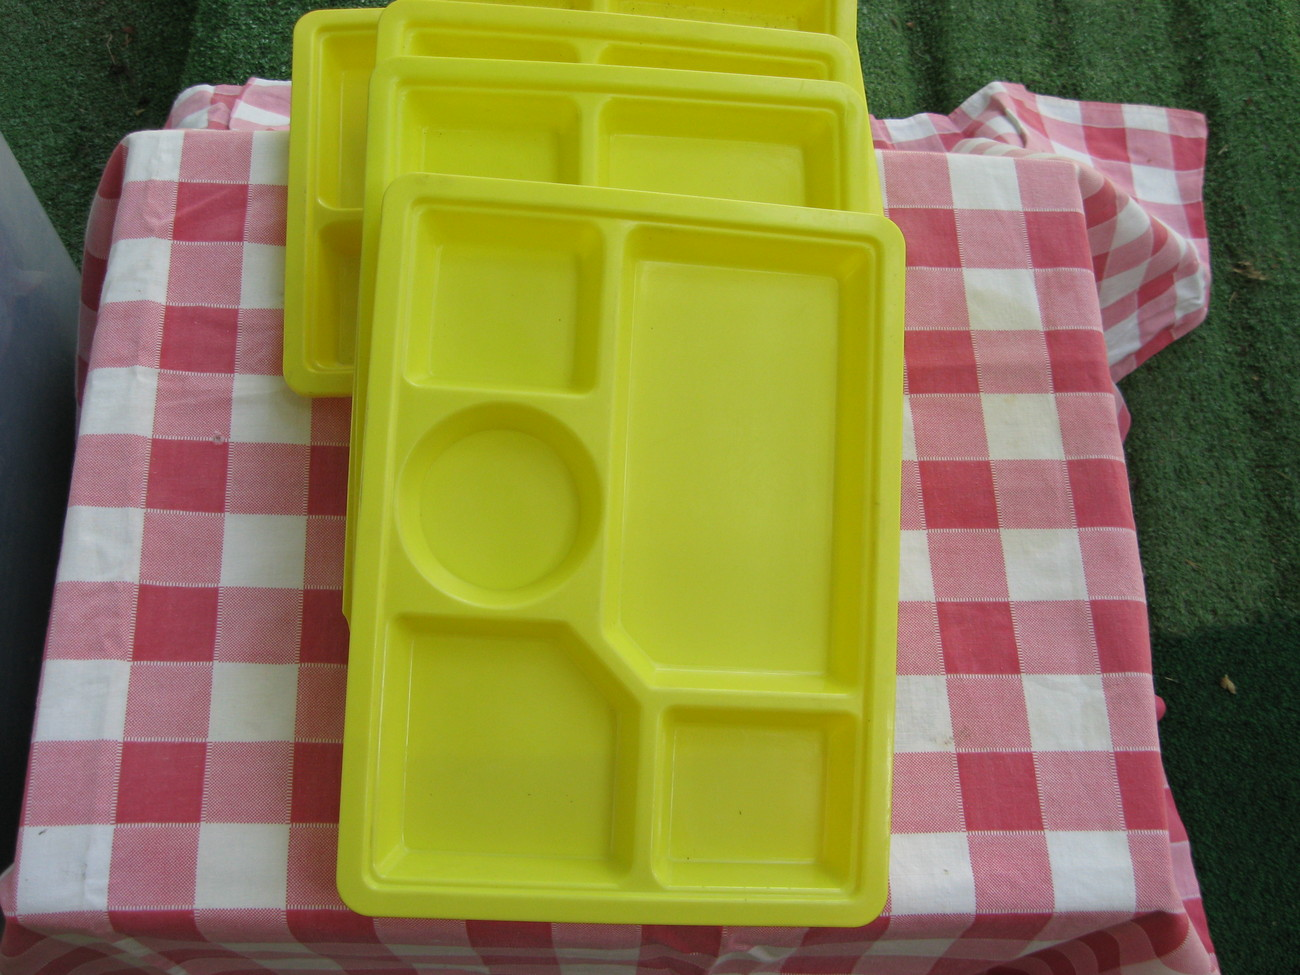 Yellowtrays